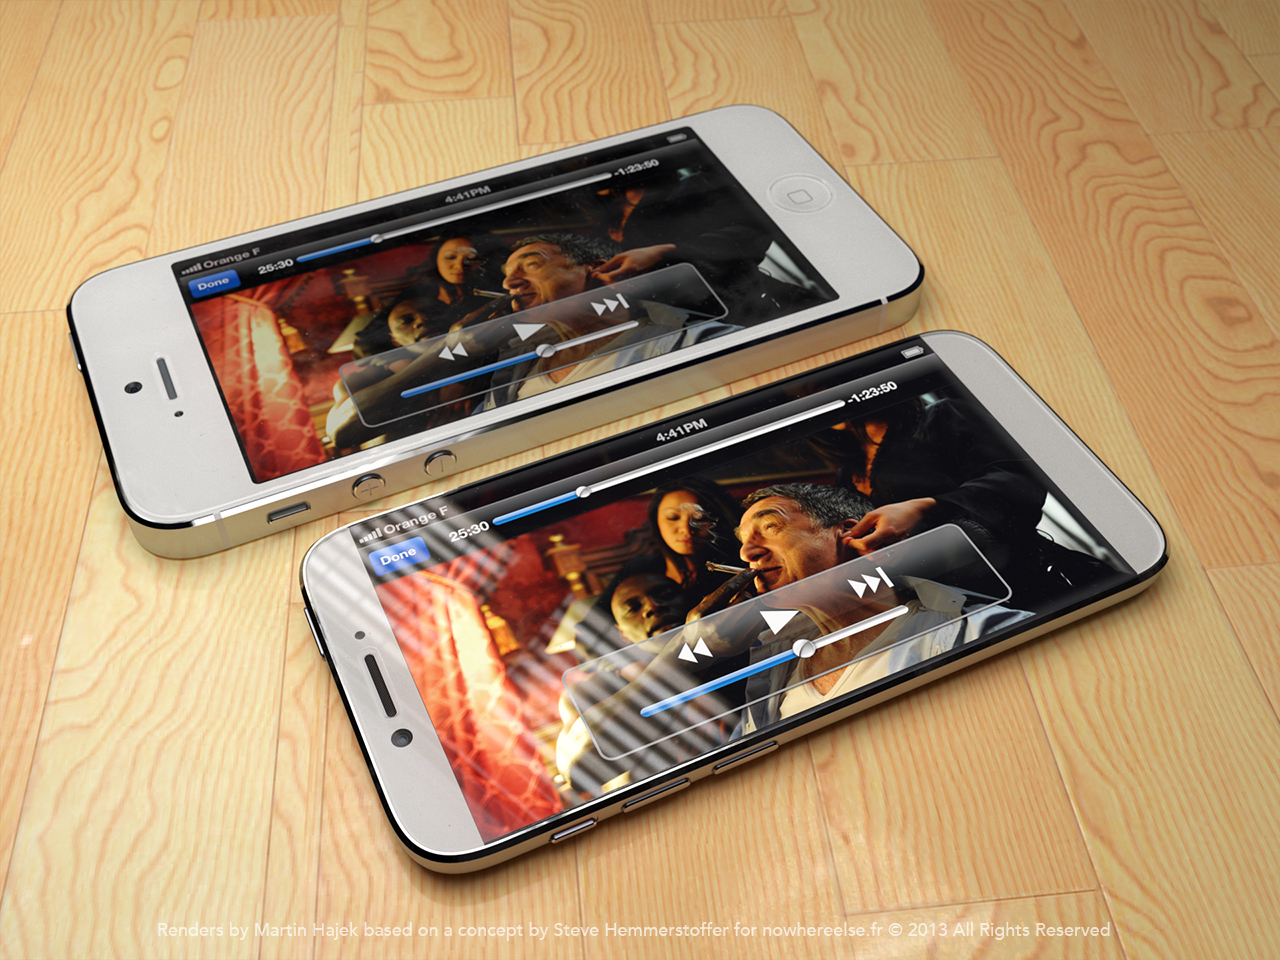 iPhone 6 concept shows 4.6 edge-to-edge display